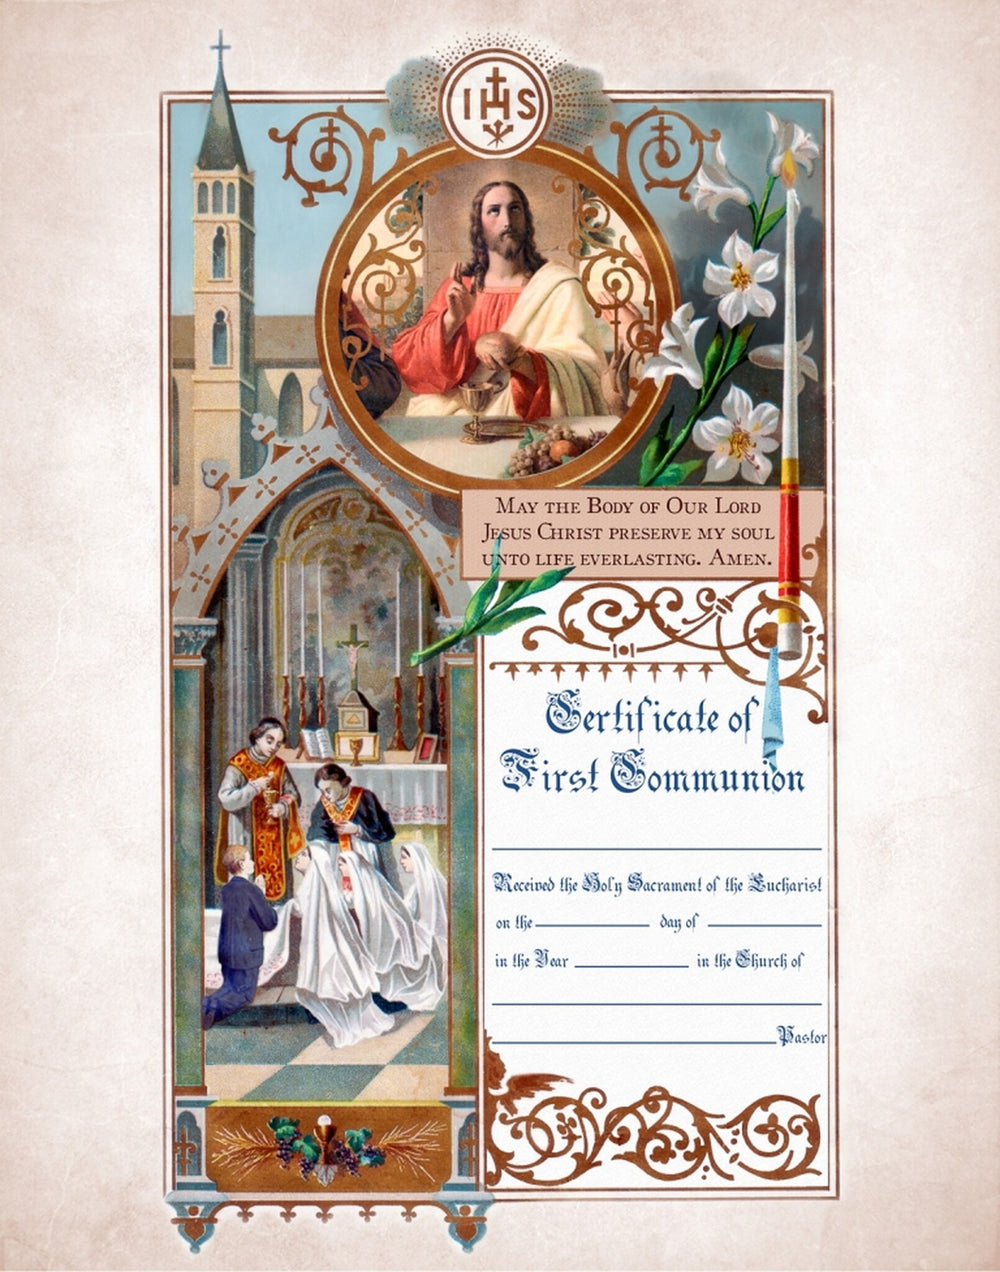 Traditional First Communion Sacrament Certificate with Priests